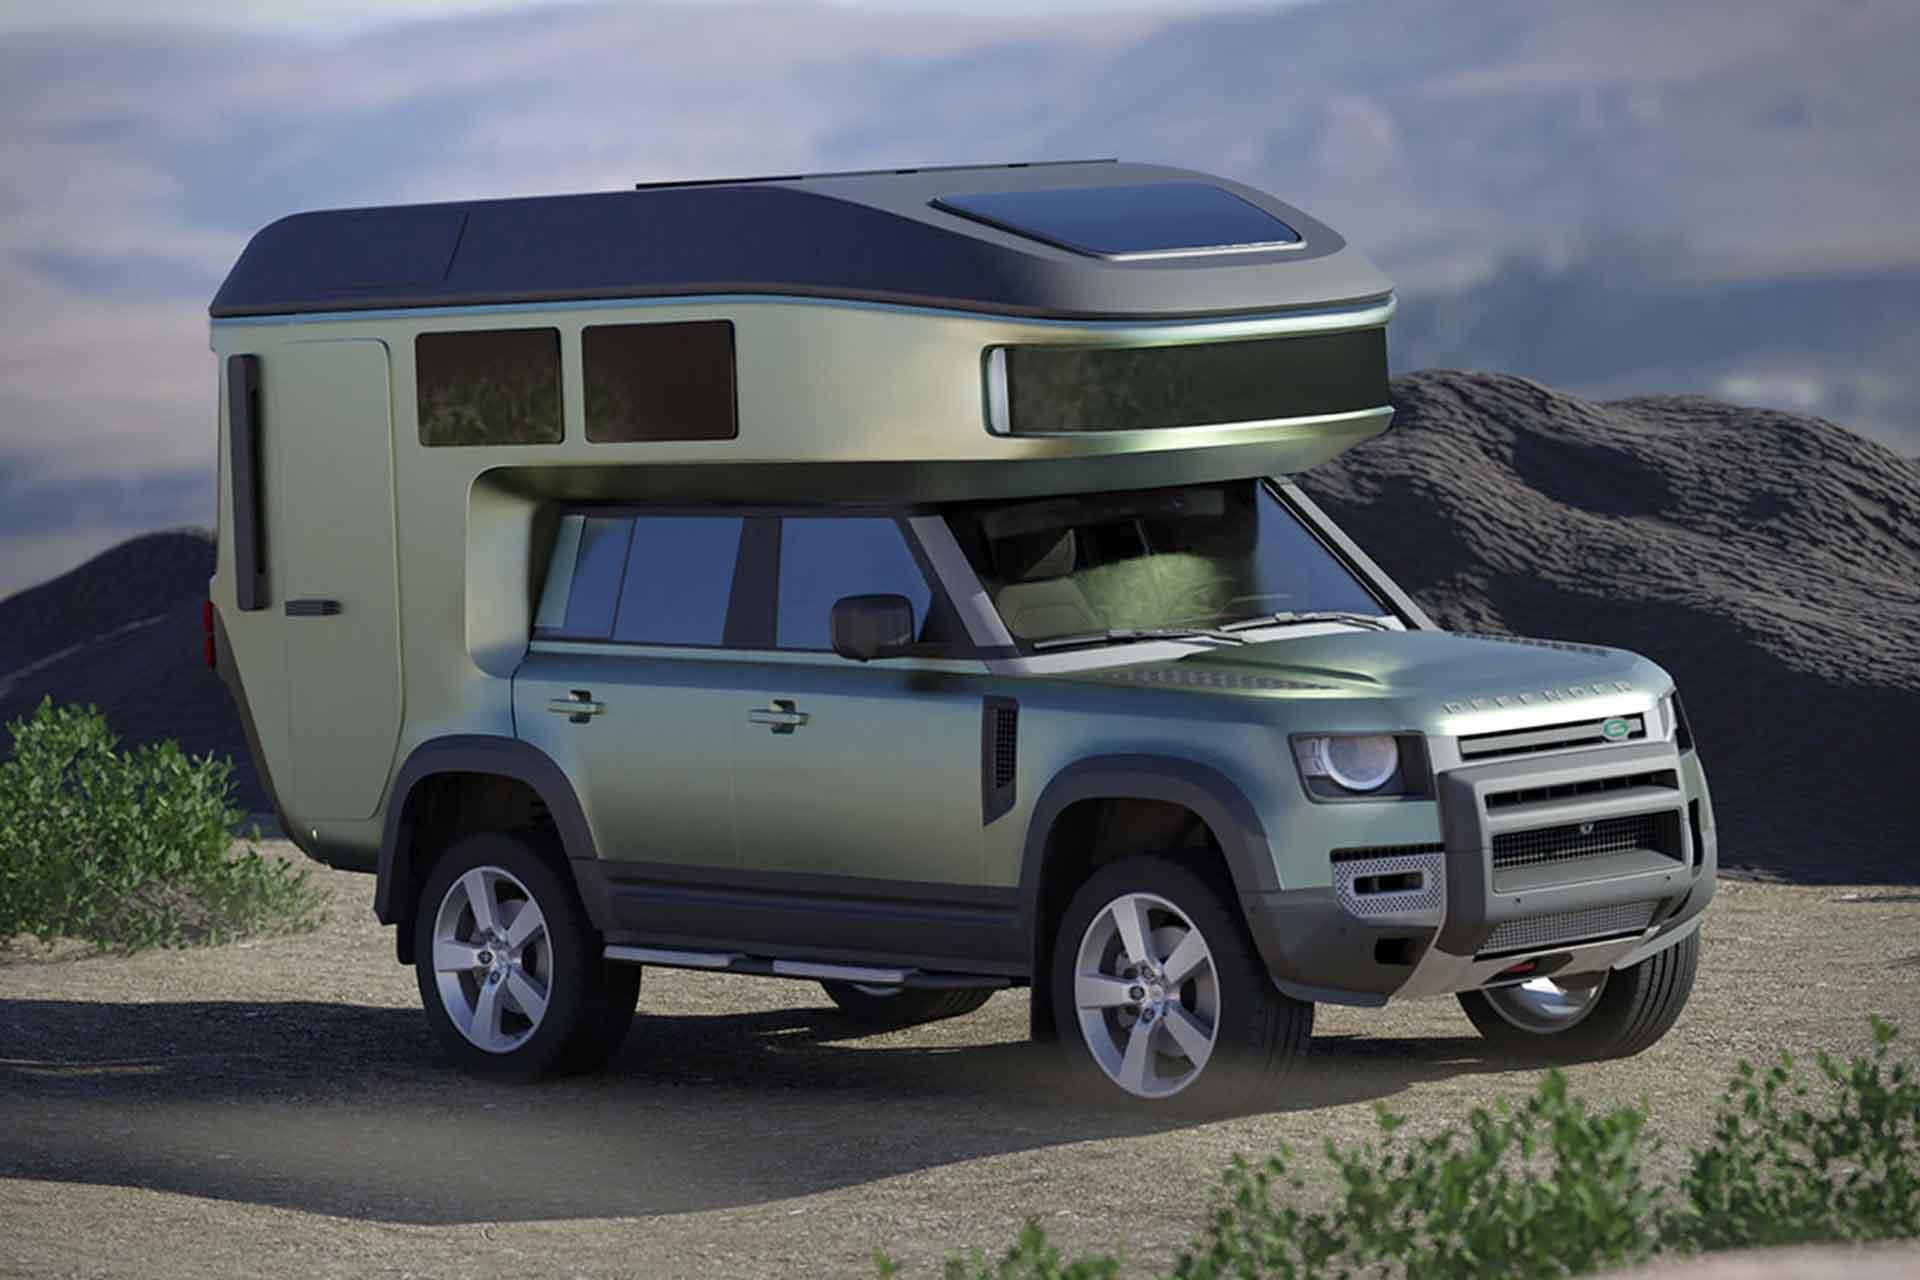 Gehocab is now making SUV's into off-road mini-RVs.